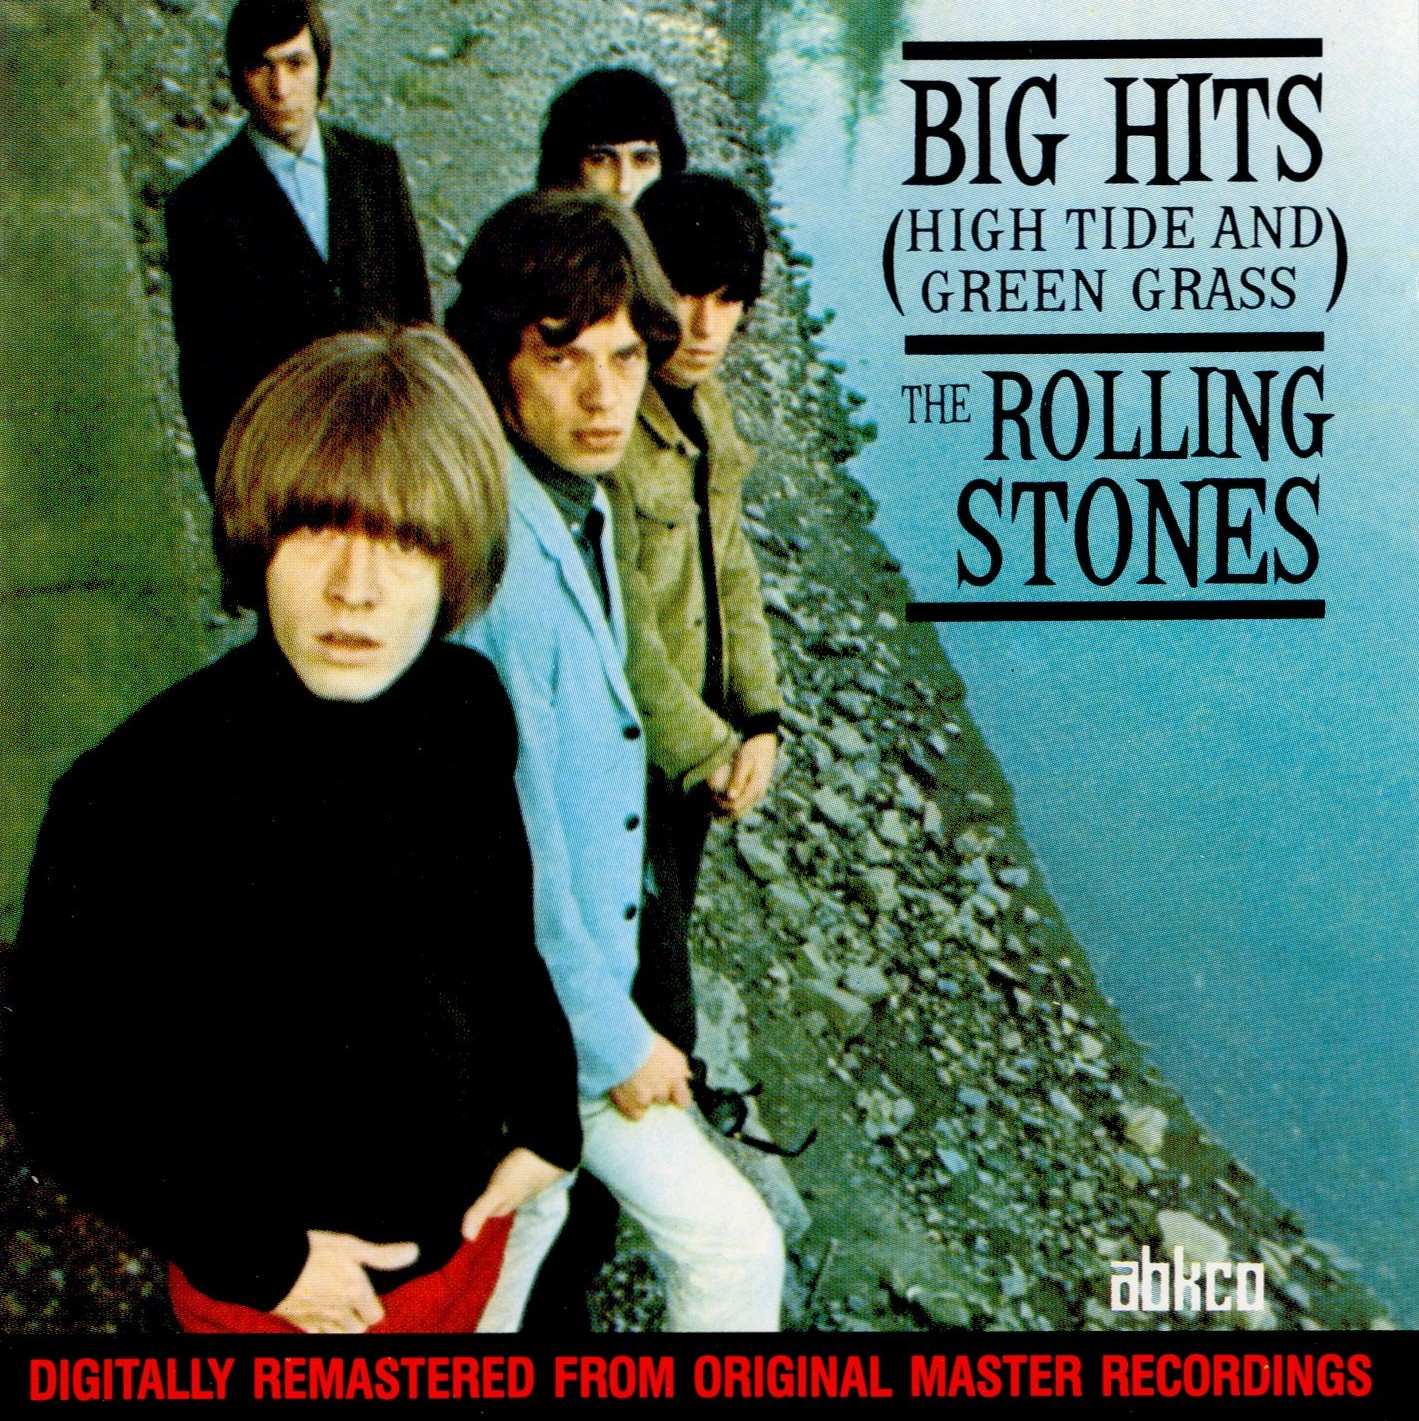 The Rolling Stones -Big Hits (High Tide And Green Grass)